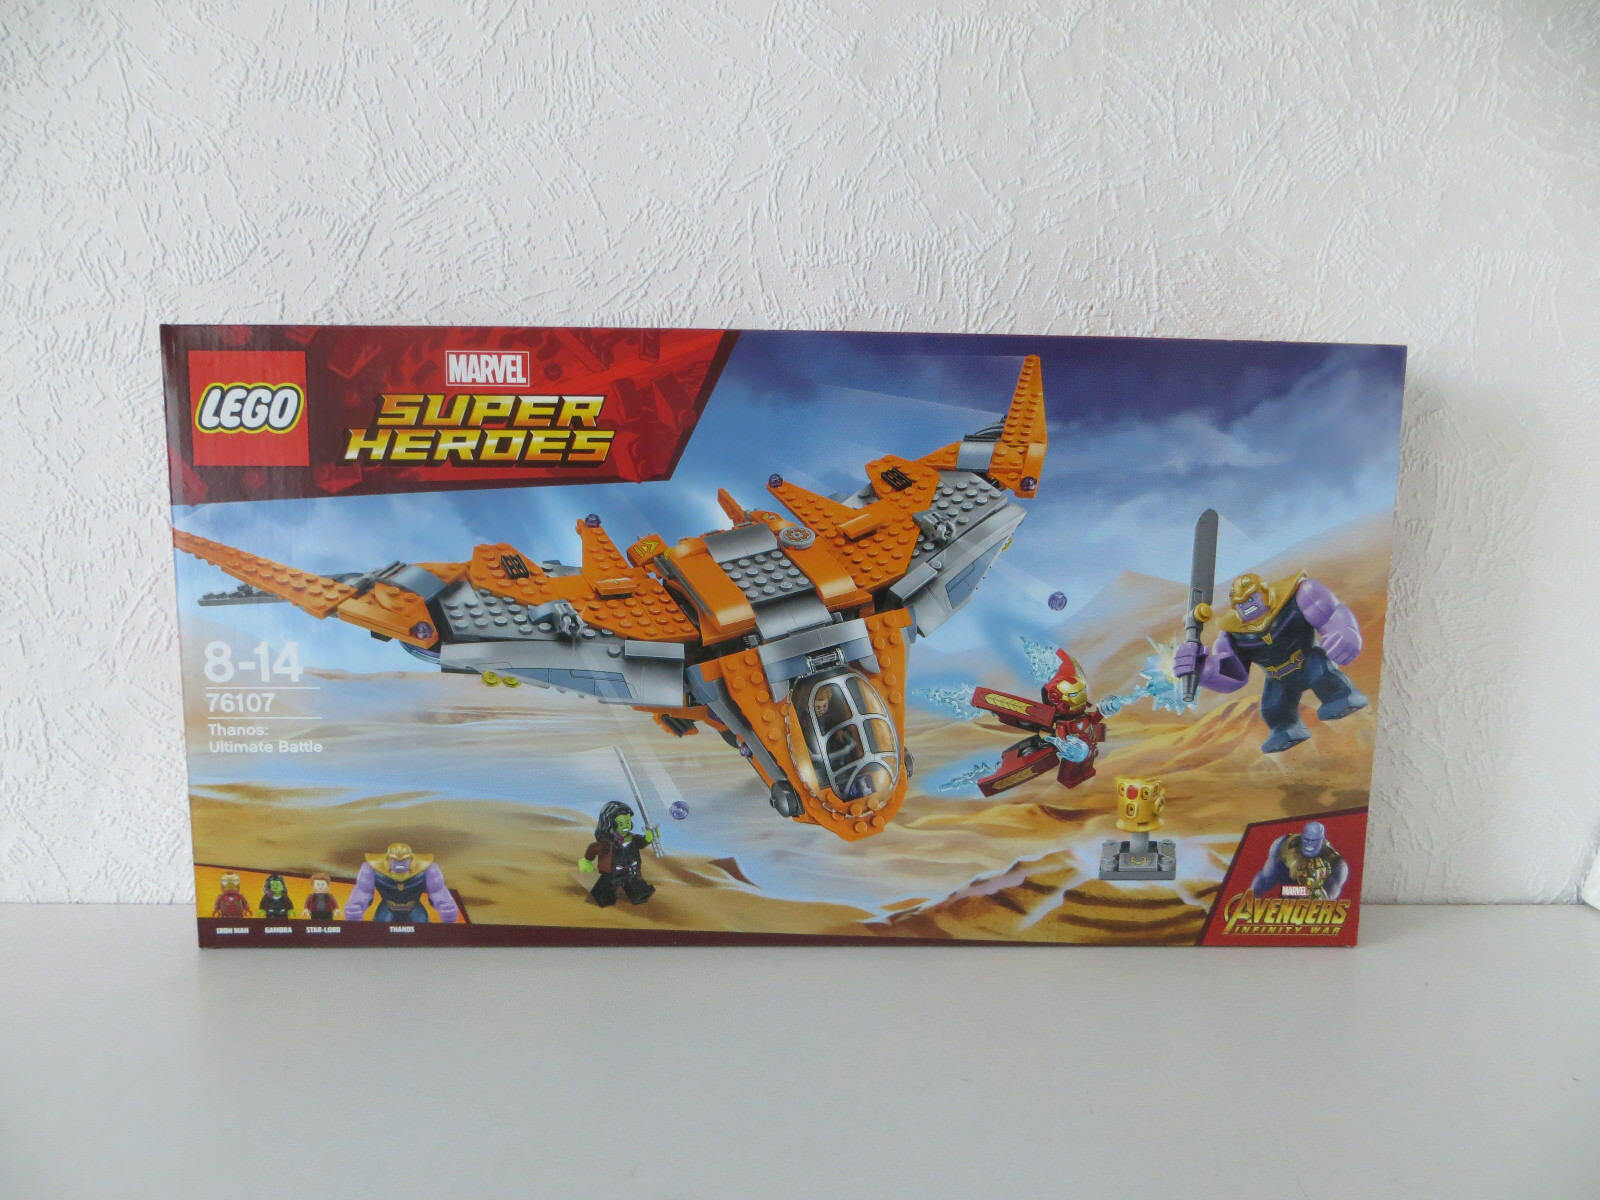 LEGO Marvel Super Heroes Thanos Das ultimative Gefecht 76107